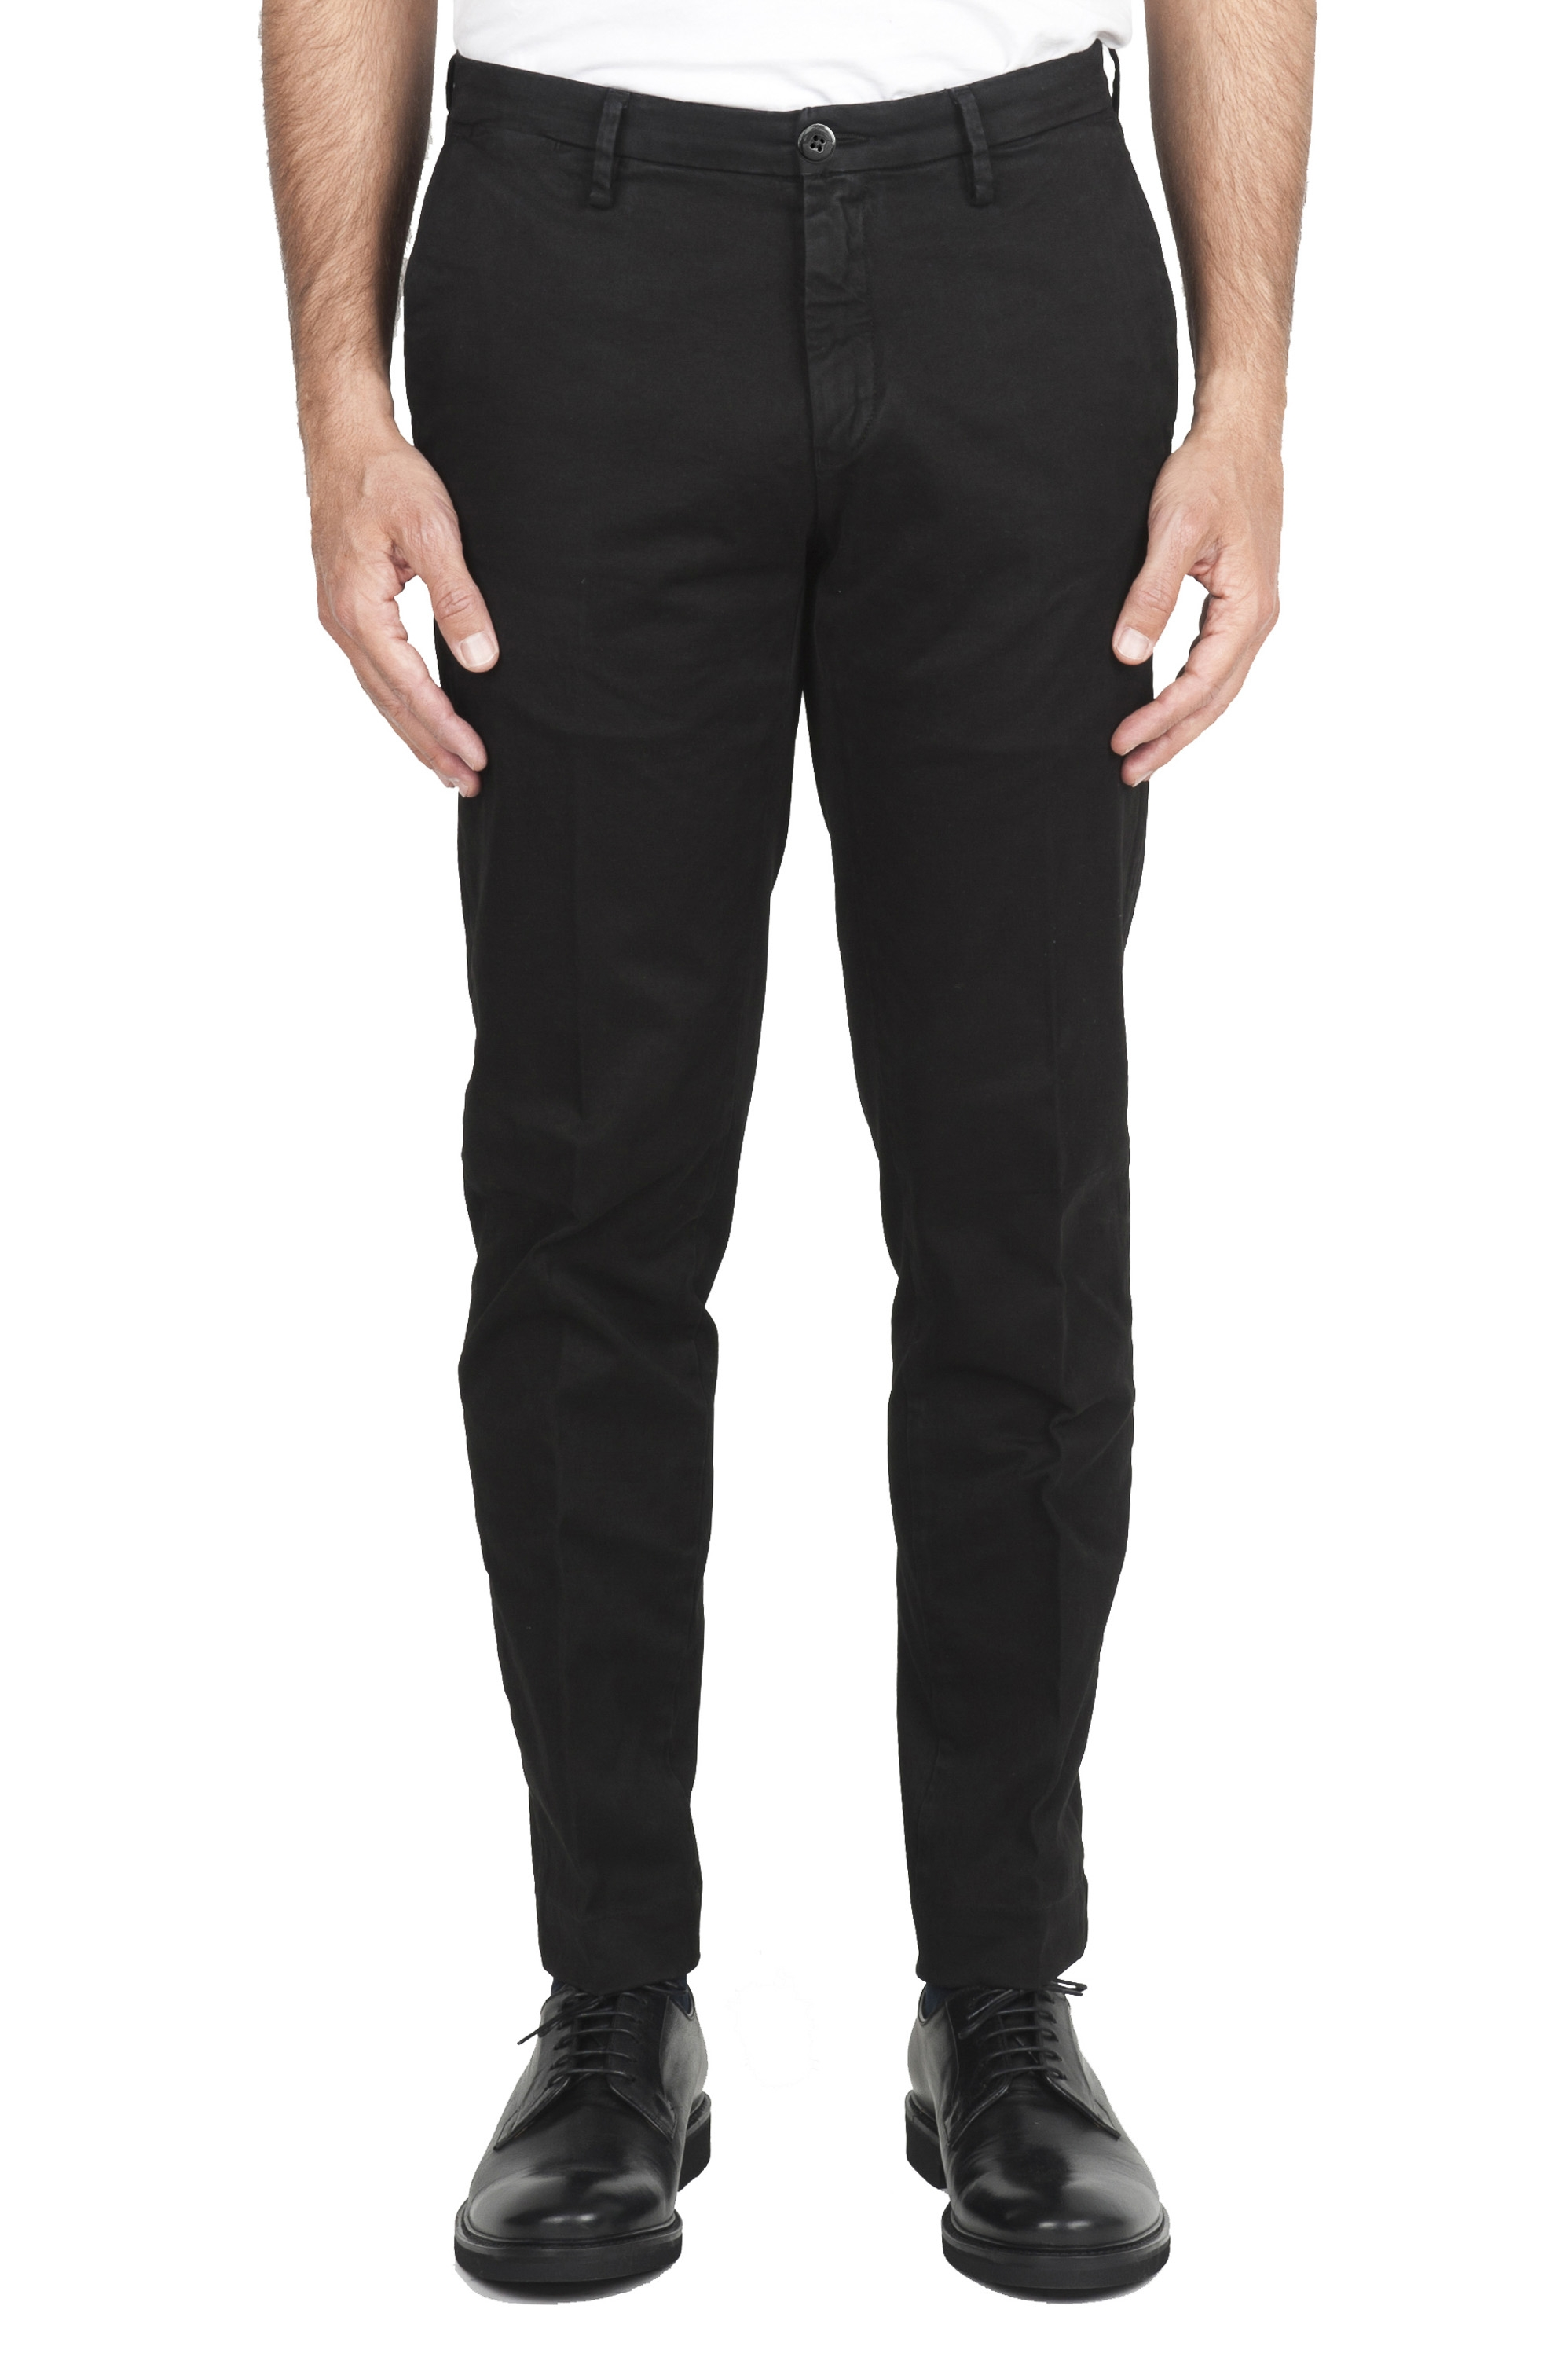 SBU 02922_2020AW Pantaloni chino classici in cotone stretch nero 01